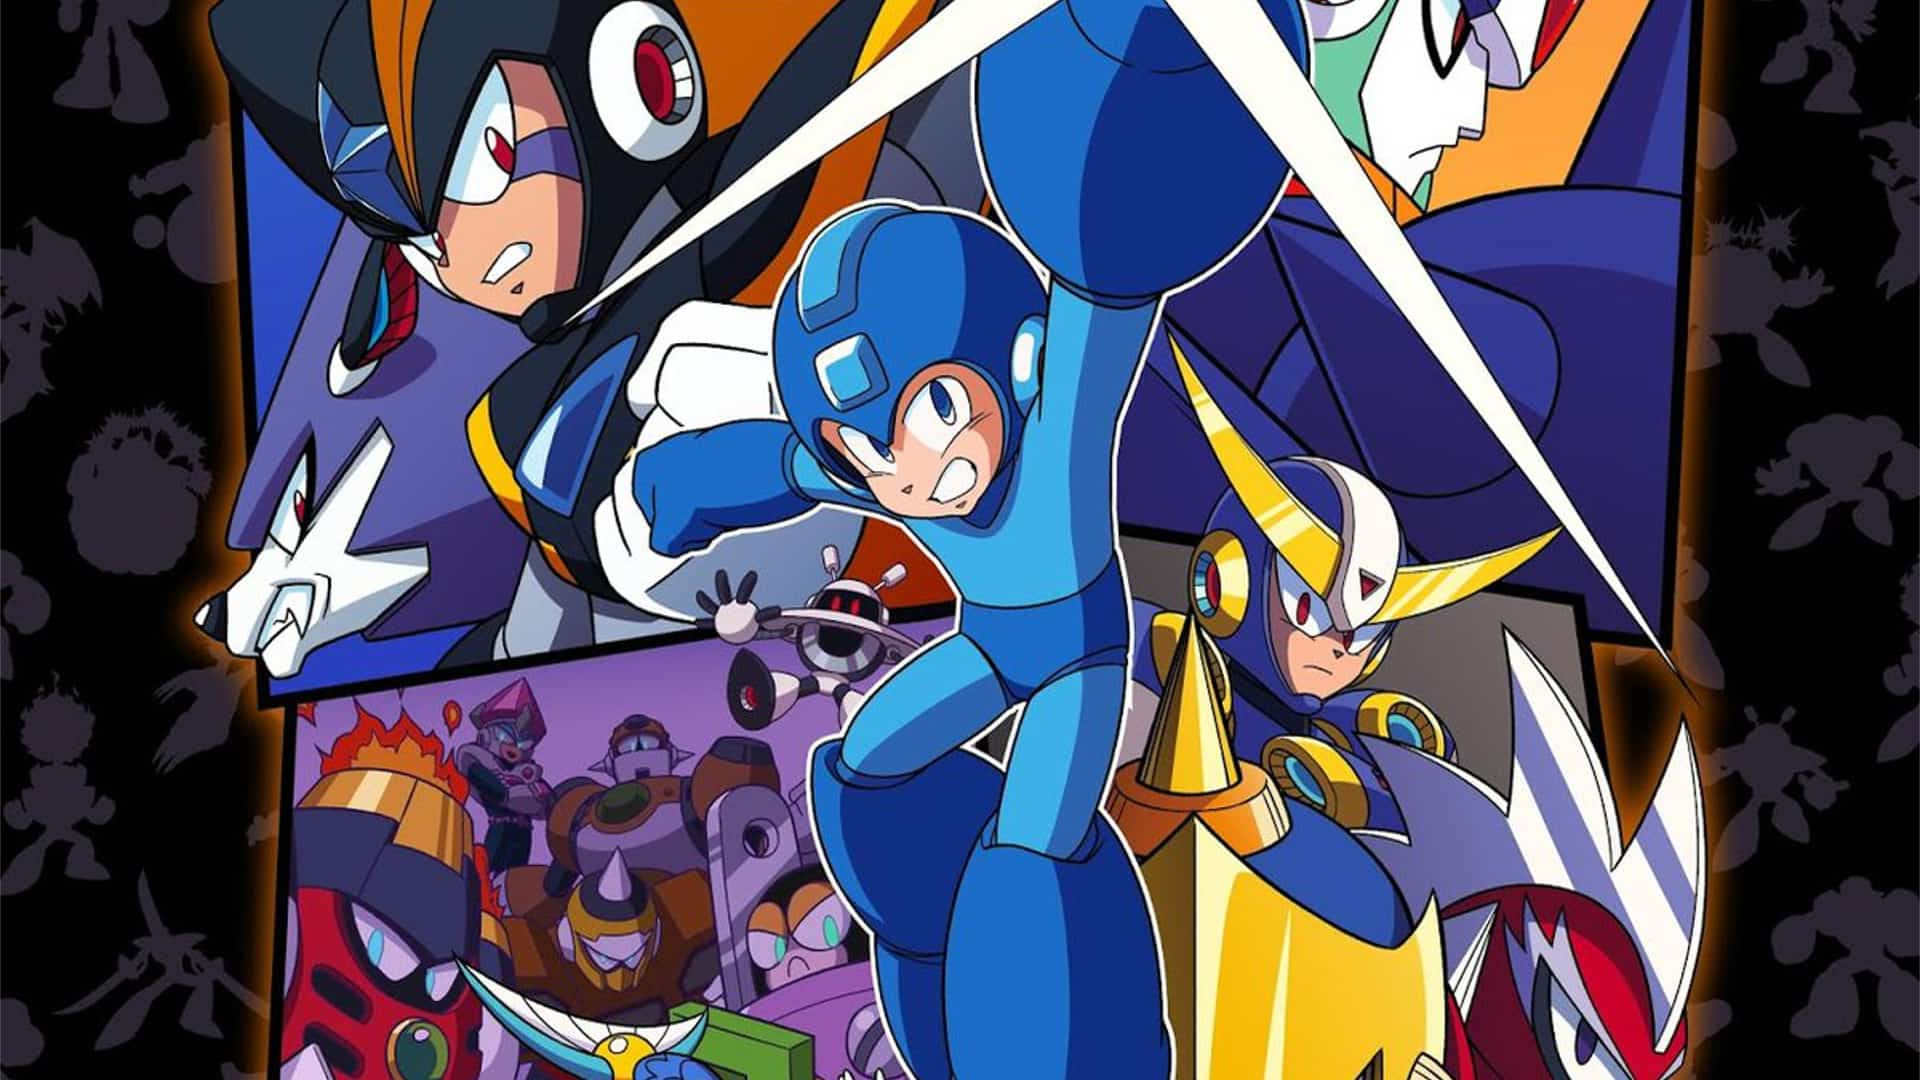 Mega Man Legacy Collections 1 & 2 are coming to Switch in May